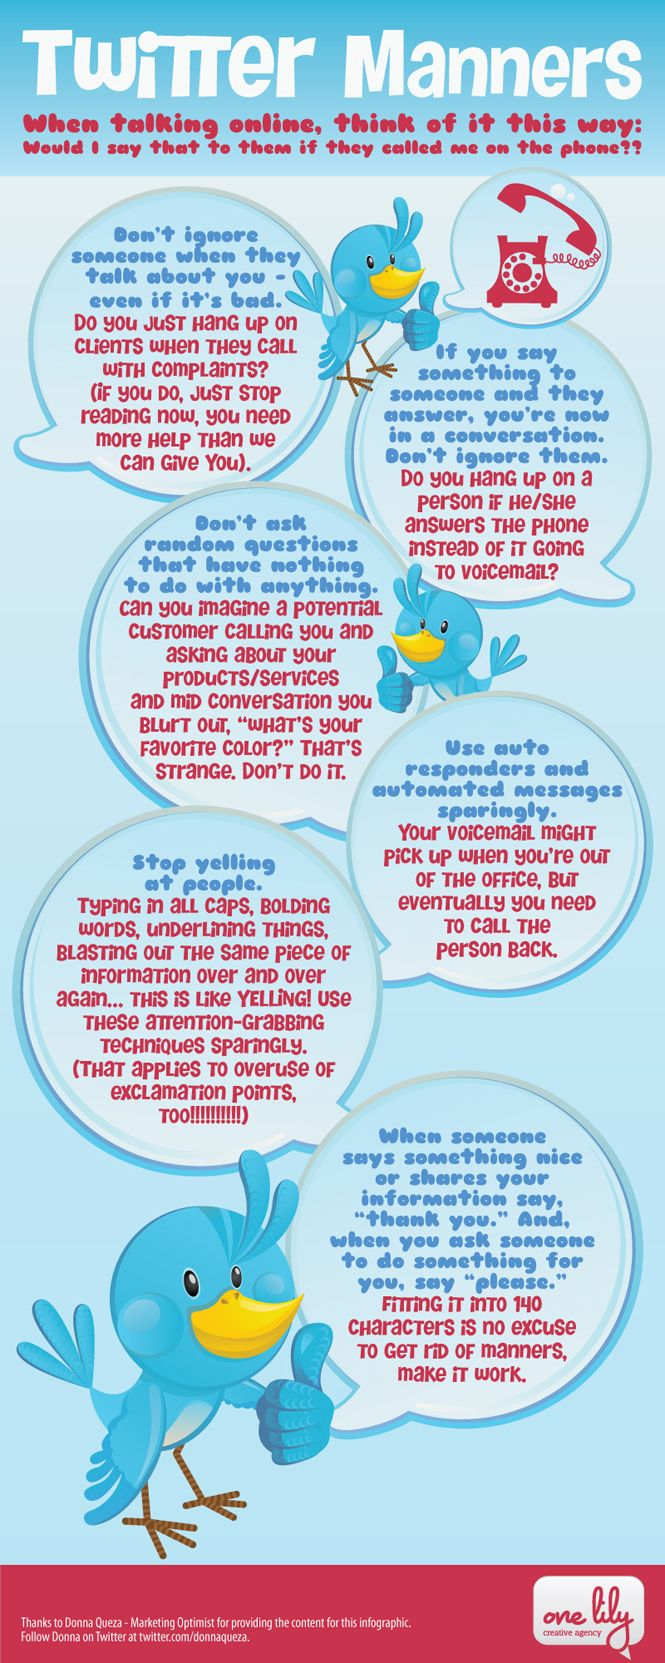 #Twitter Manners